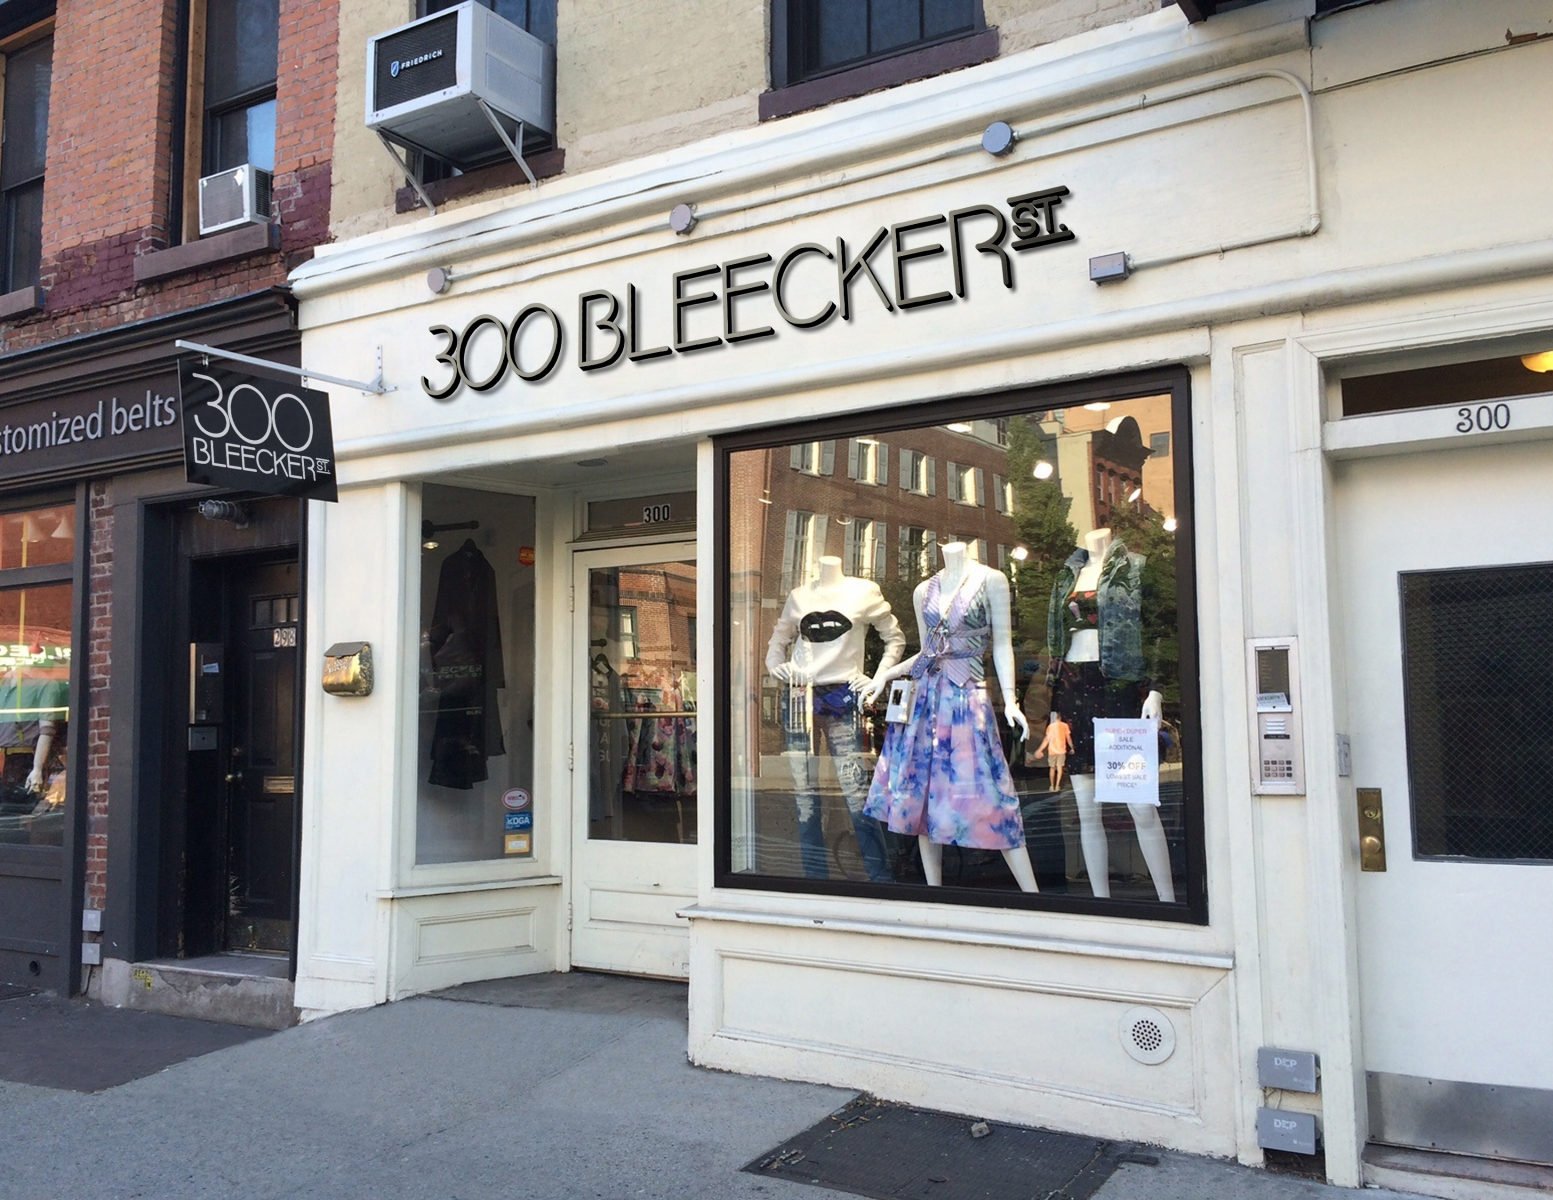 300 Bleecker St, New York, NY 10014, USA